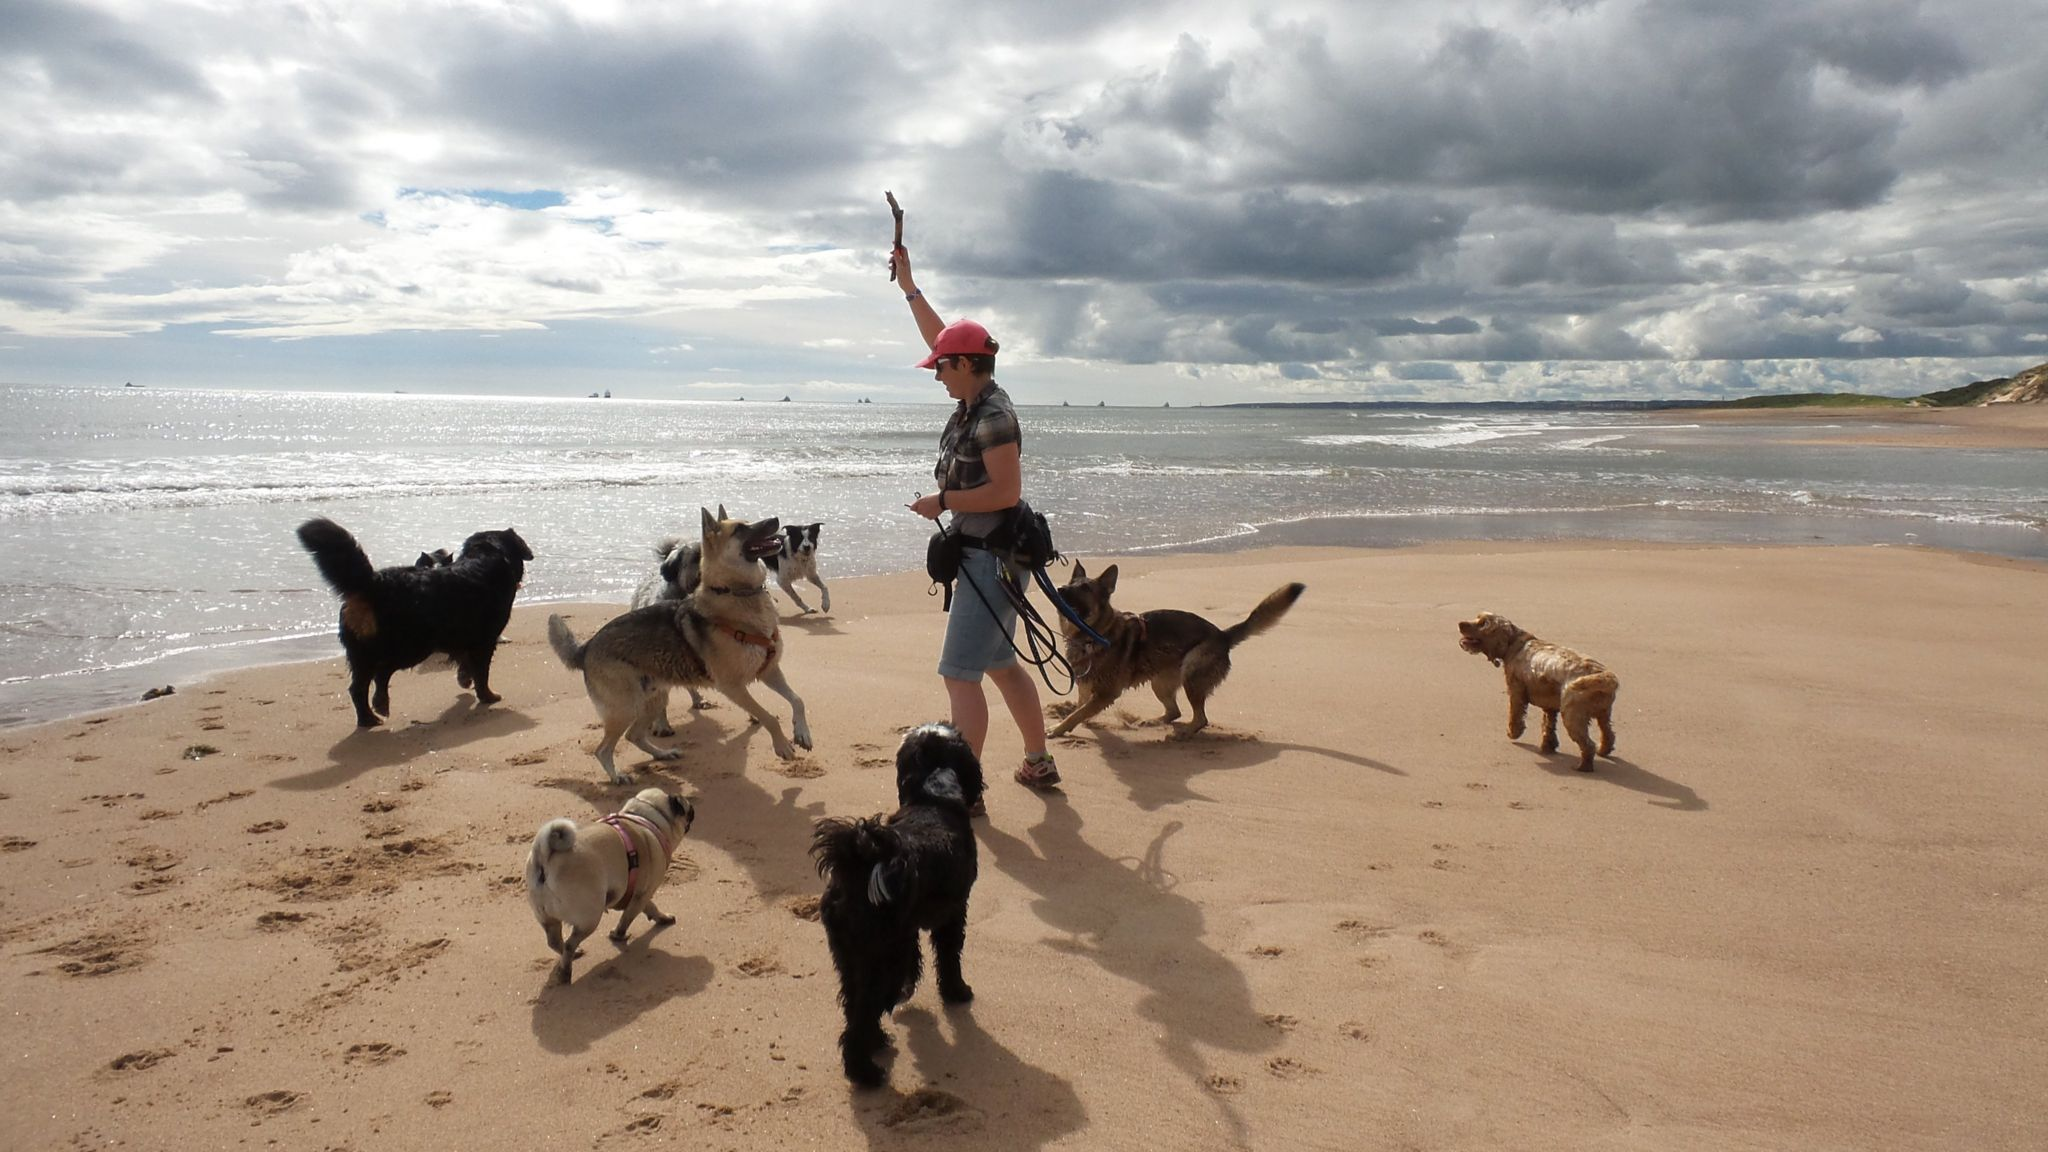 My name is Abi Will and I am a dog walker, this picture was taken on one of our trips to Balmedie Beach. It's a rare treat for the dogs and they love it